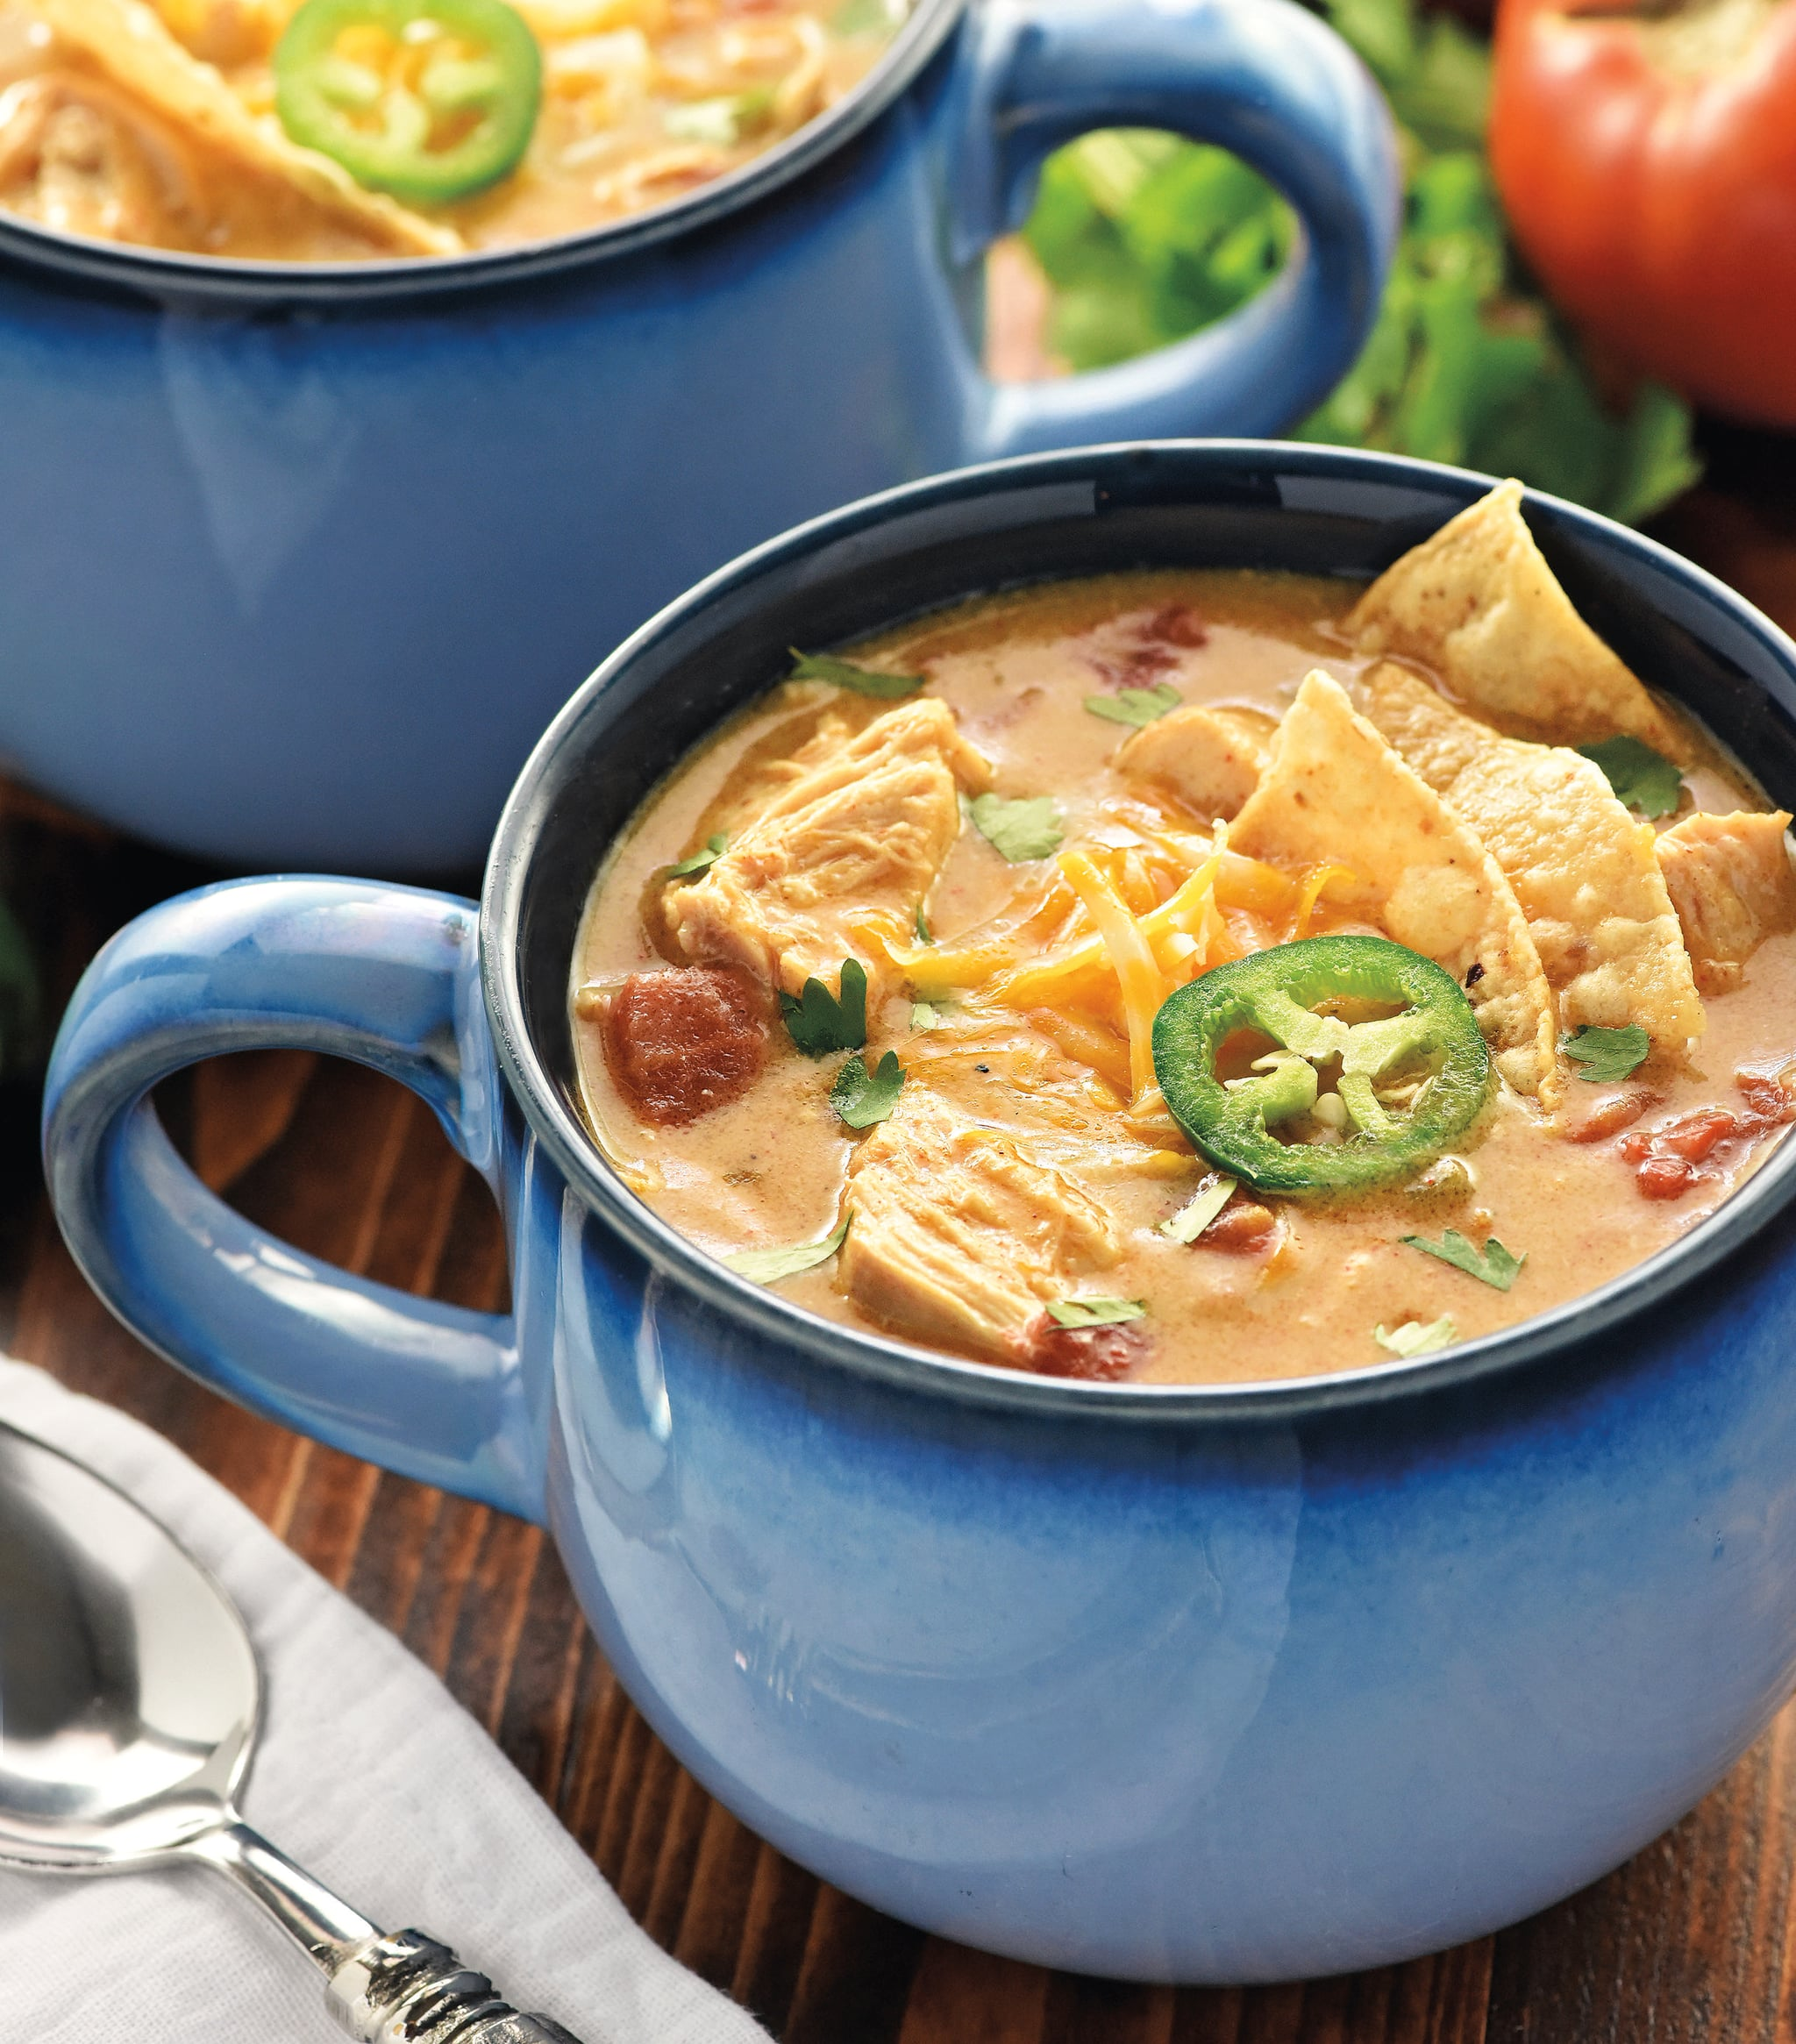 Slow cooker king ranch chicken soup recipe popsugar food forumfinder Choice Image